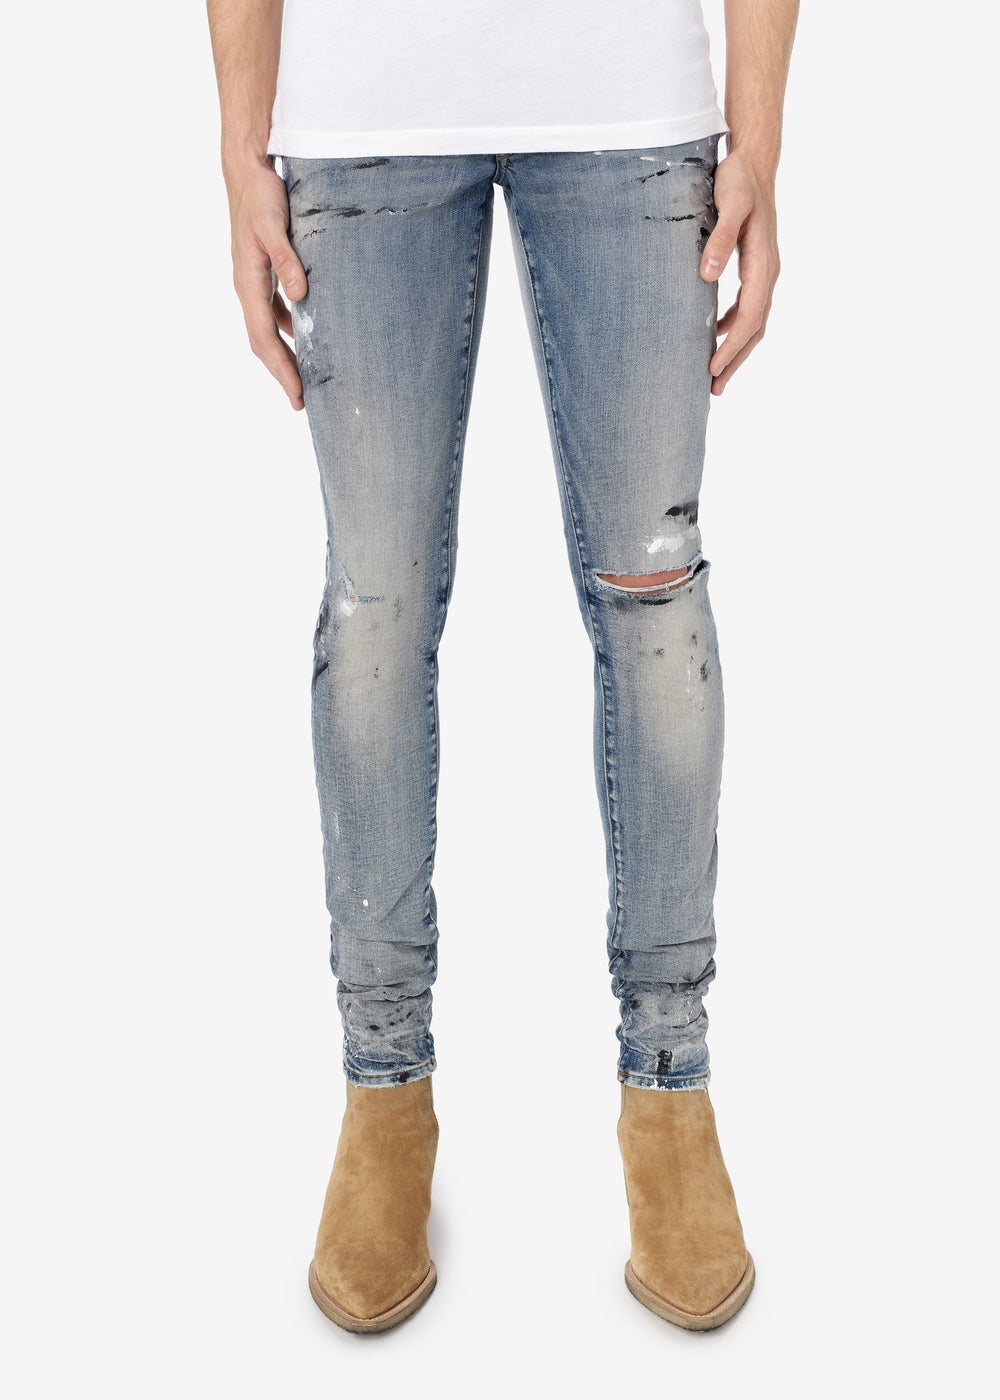 HAND PAINTED SLIT KNEE JEAN - CLAY INDIGO